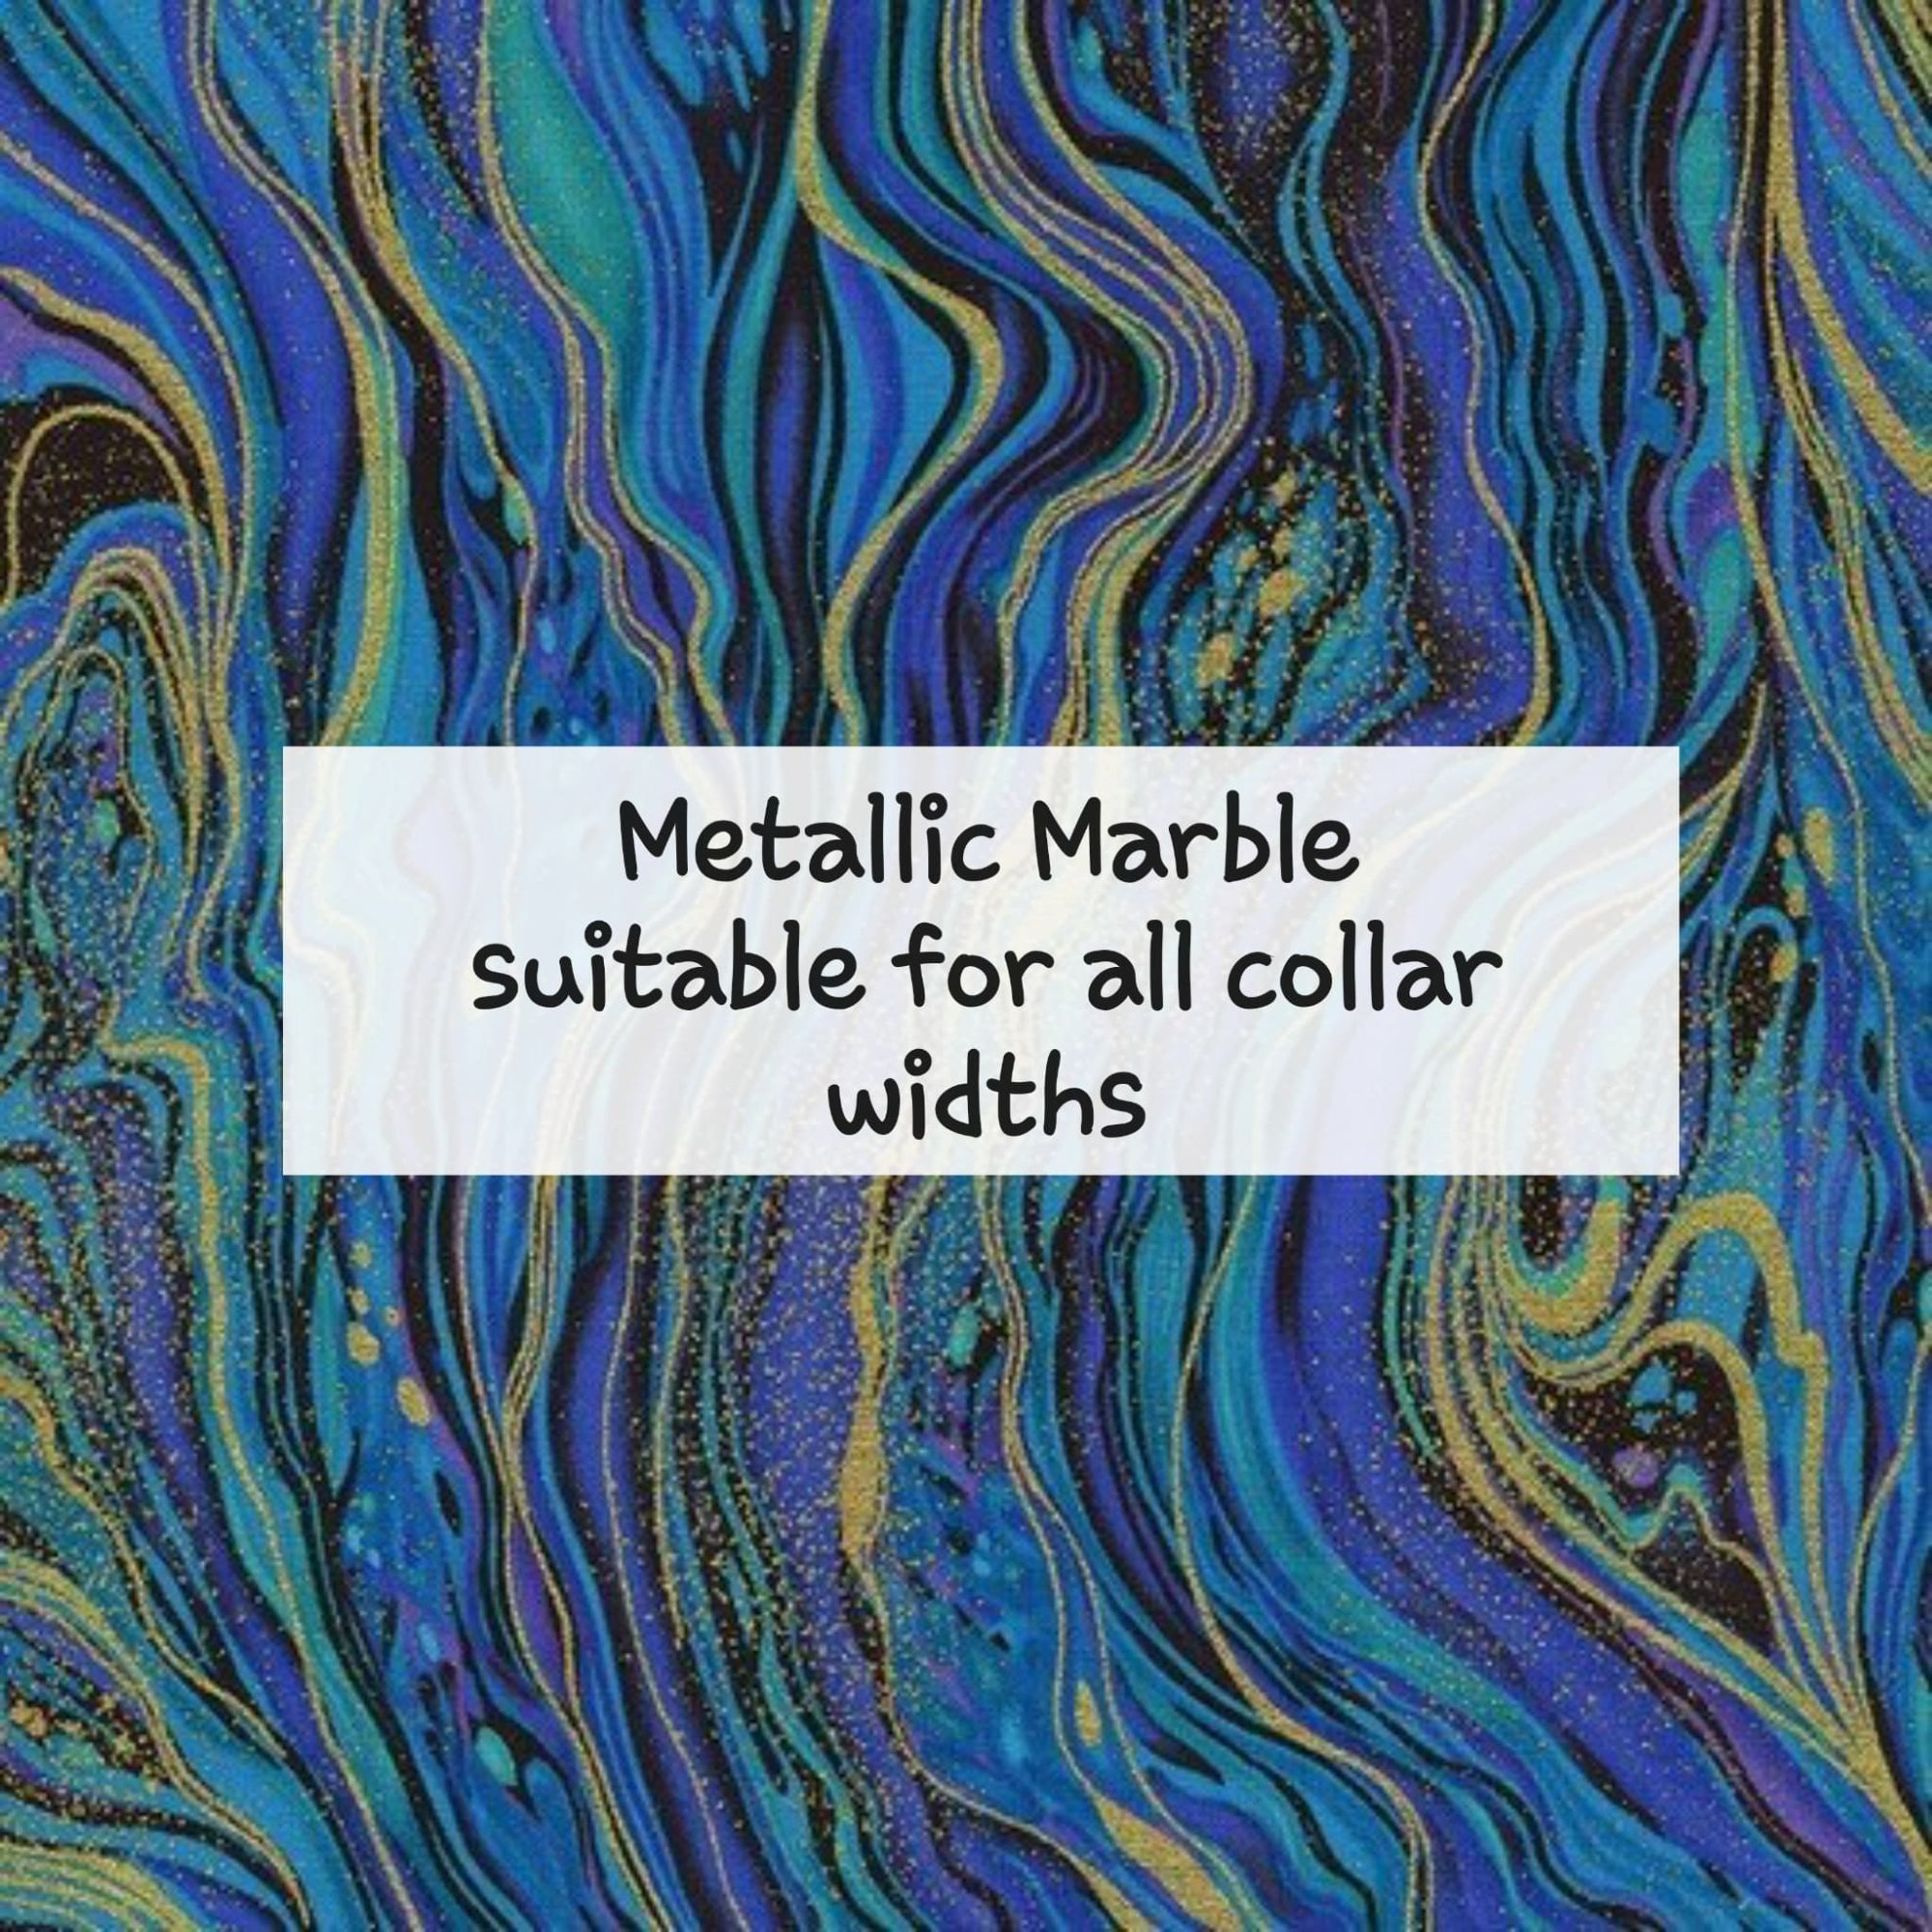 Metallic Marble - Suitable for all collar widths